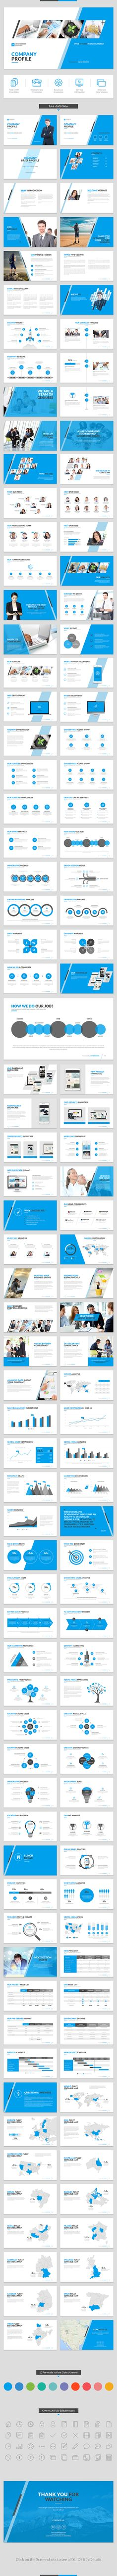 Company Profile Keynote Template. Download here: http://graphicriver.net/item/company-profile-keynote-template/15530831?ref=ksioks